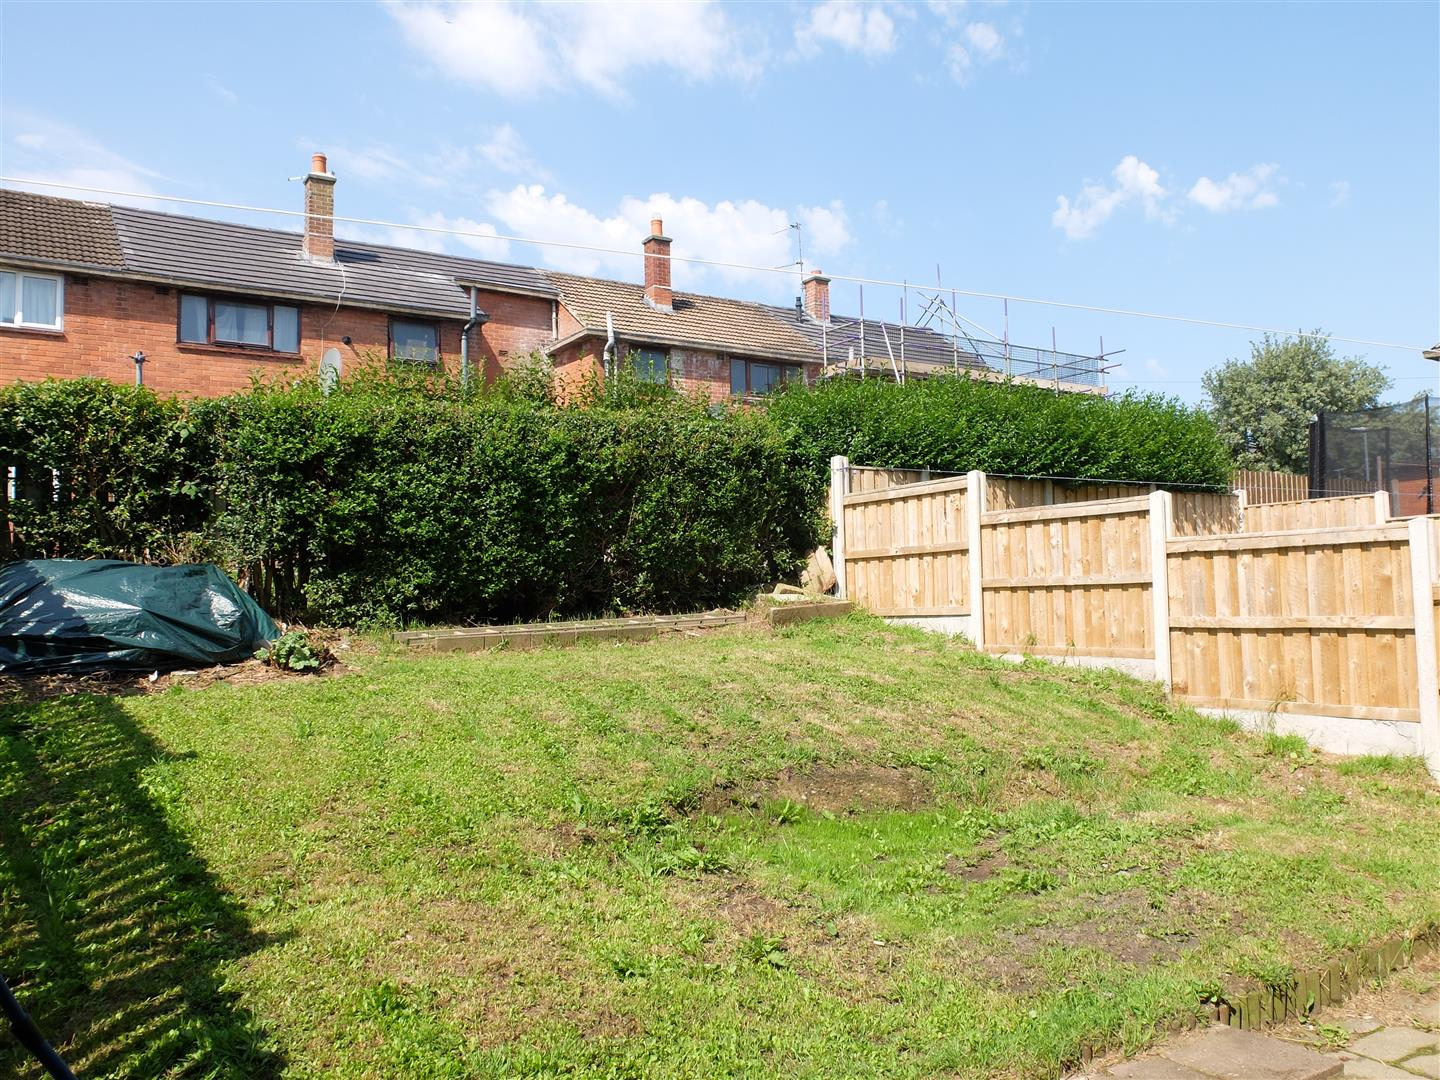 3 Bedrooms House - Terraced For Sale 46 Meadow View Carlisle